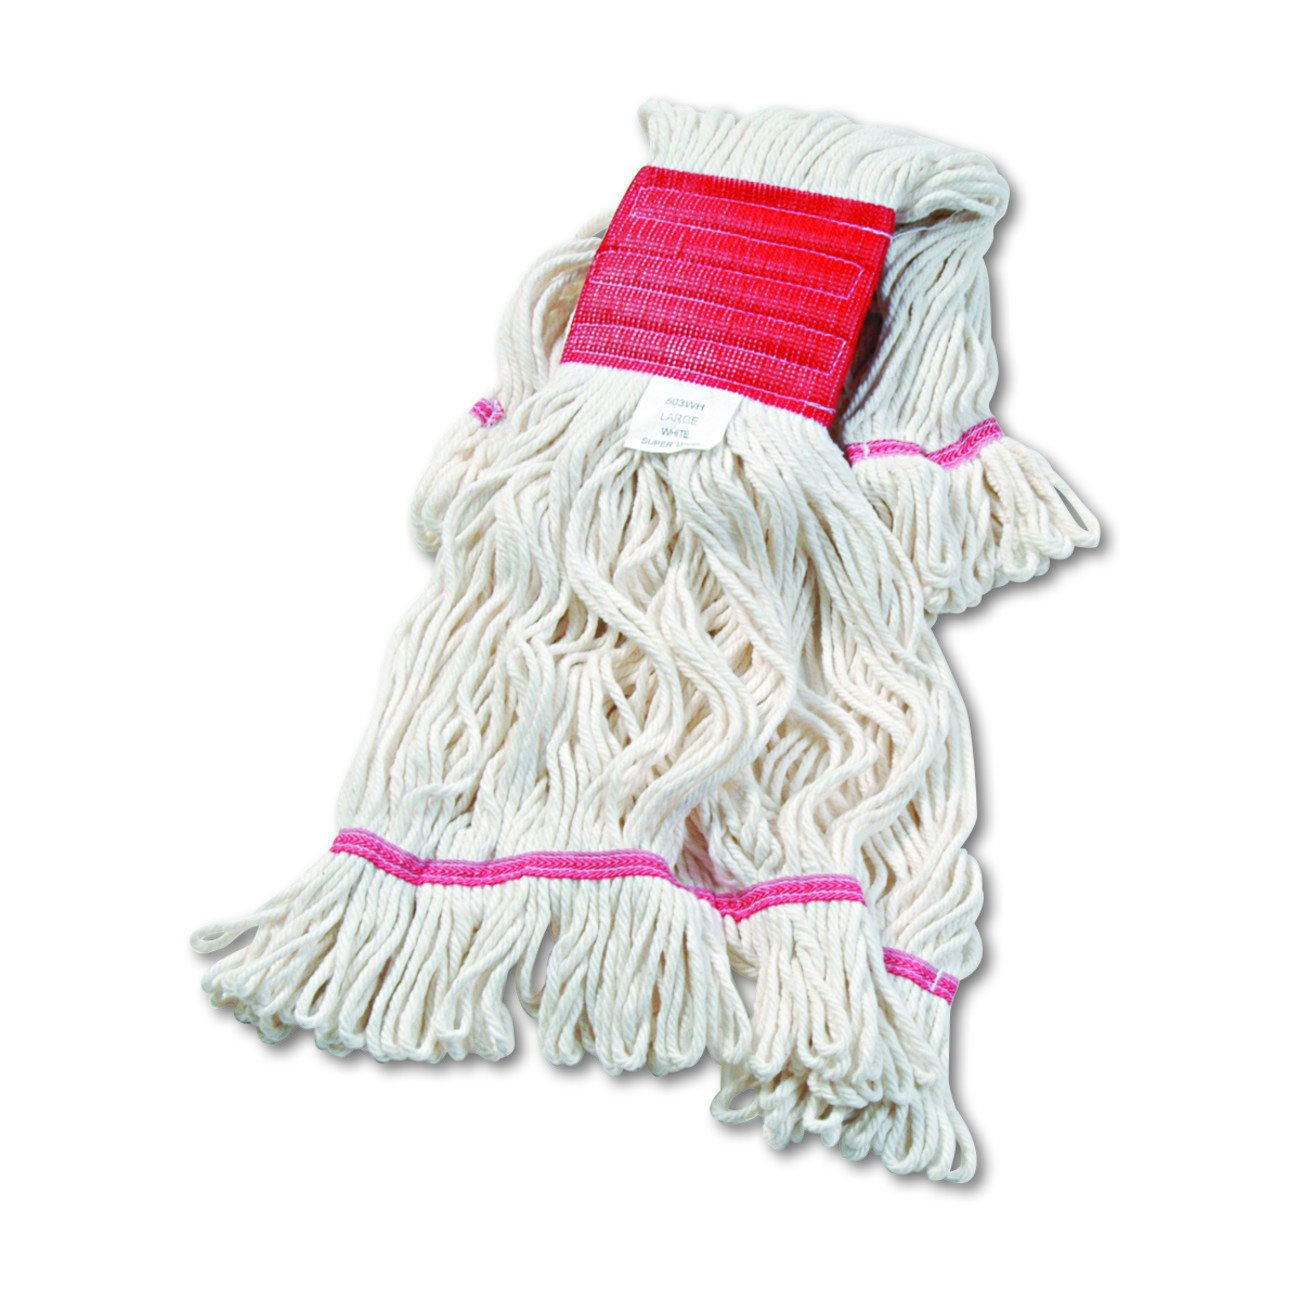 Boardwalk UNS 503WH Super Loop Wet Mop Head, Cotton/Synthetic, Large Size, White, Cotton/Synthetic (Pack of 12) by Boardwalk